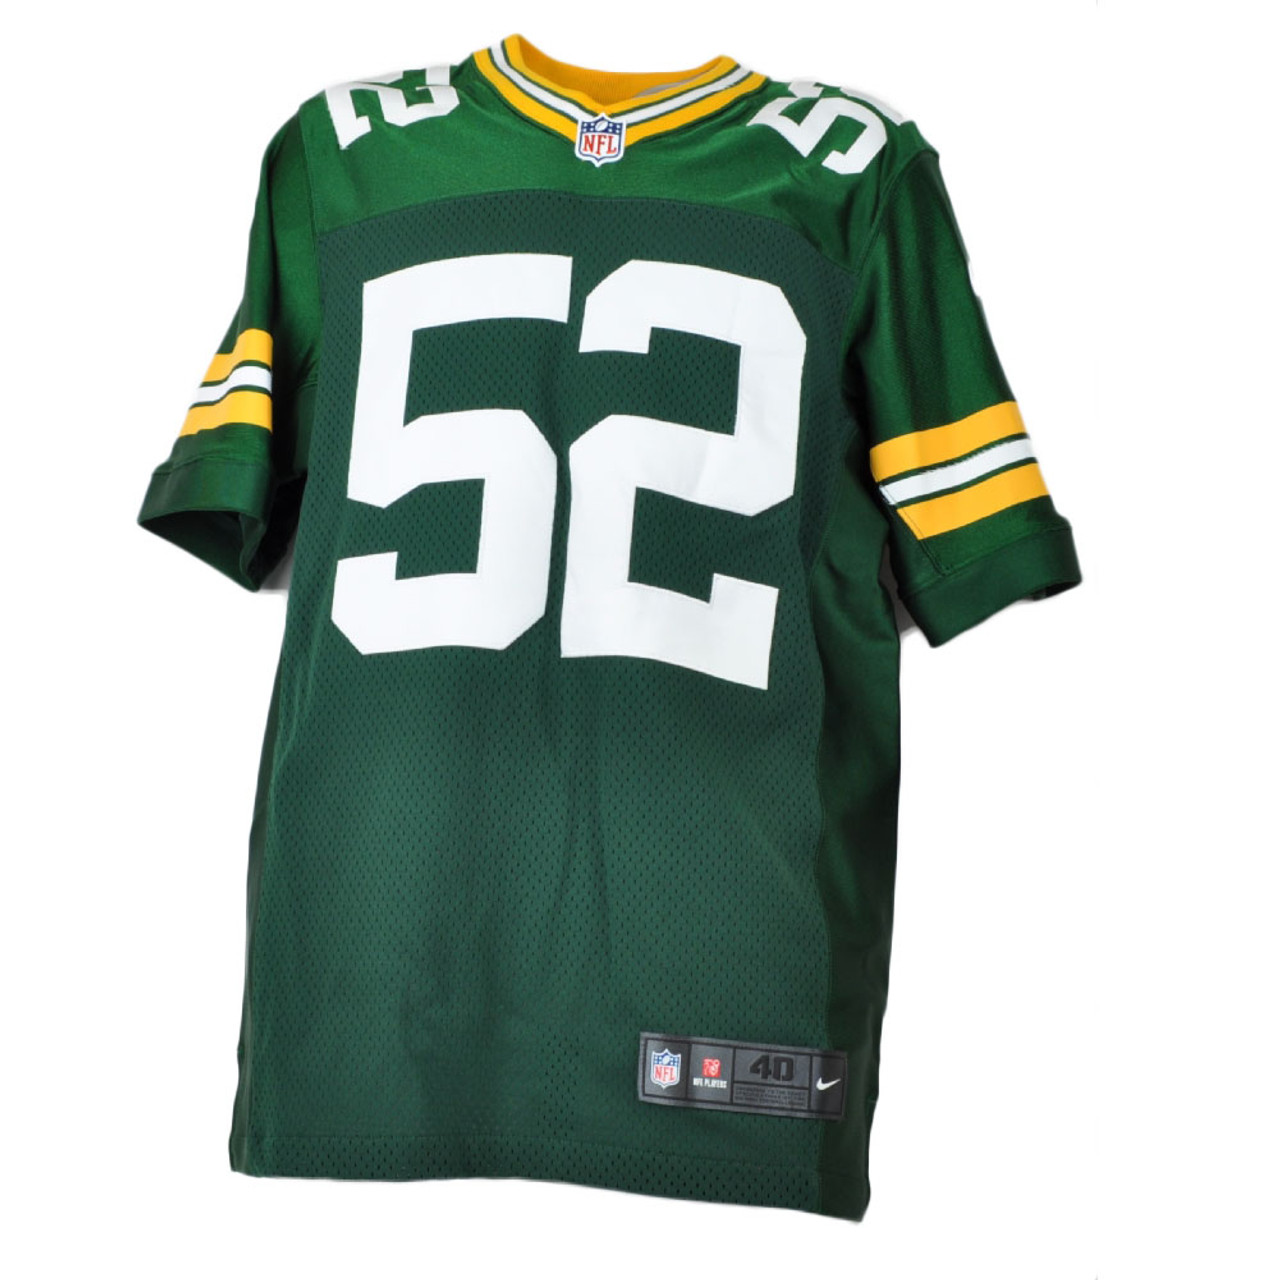 NFL Green Bay Packers Clay Matthews III Nike On Field Authentic Jersey Mens Adult